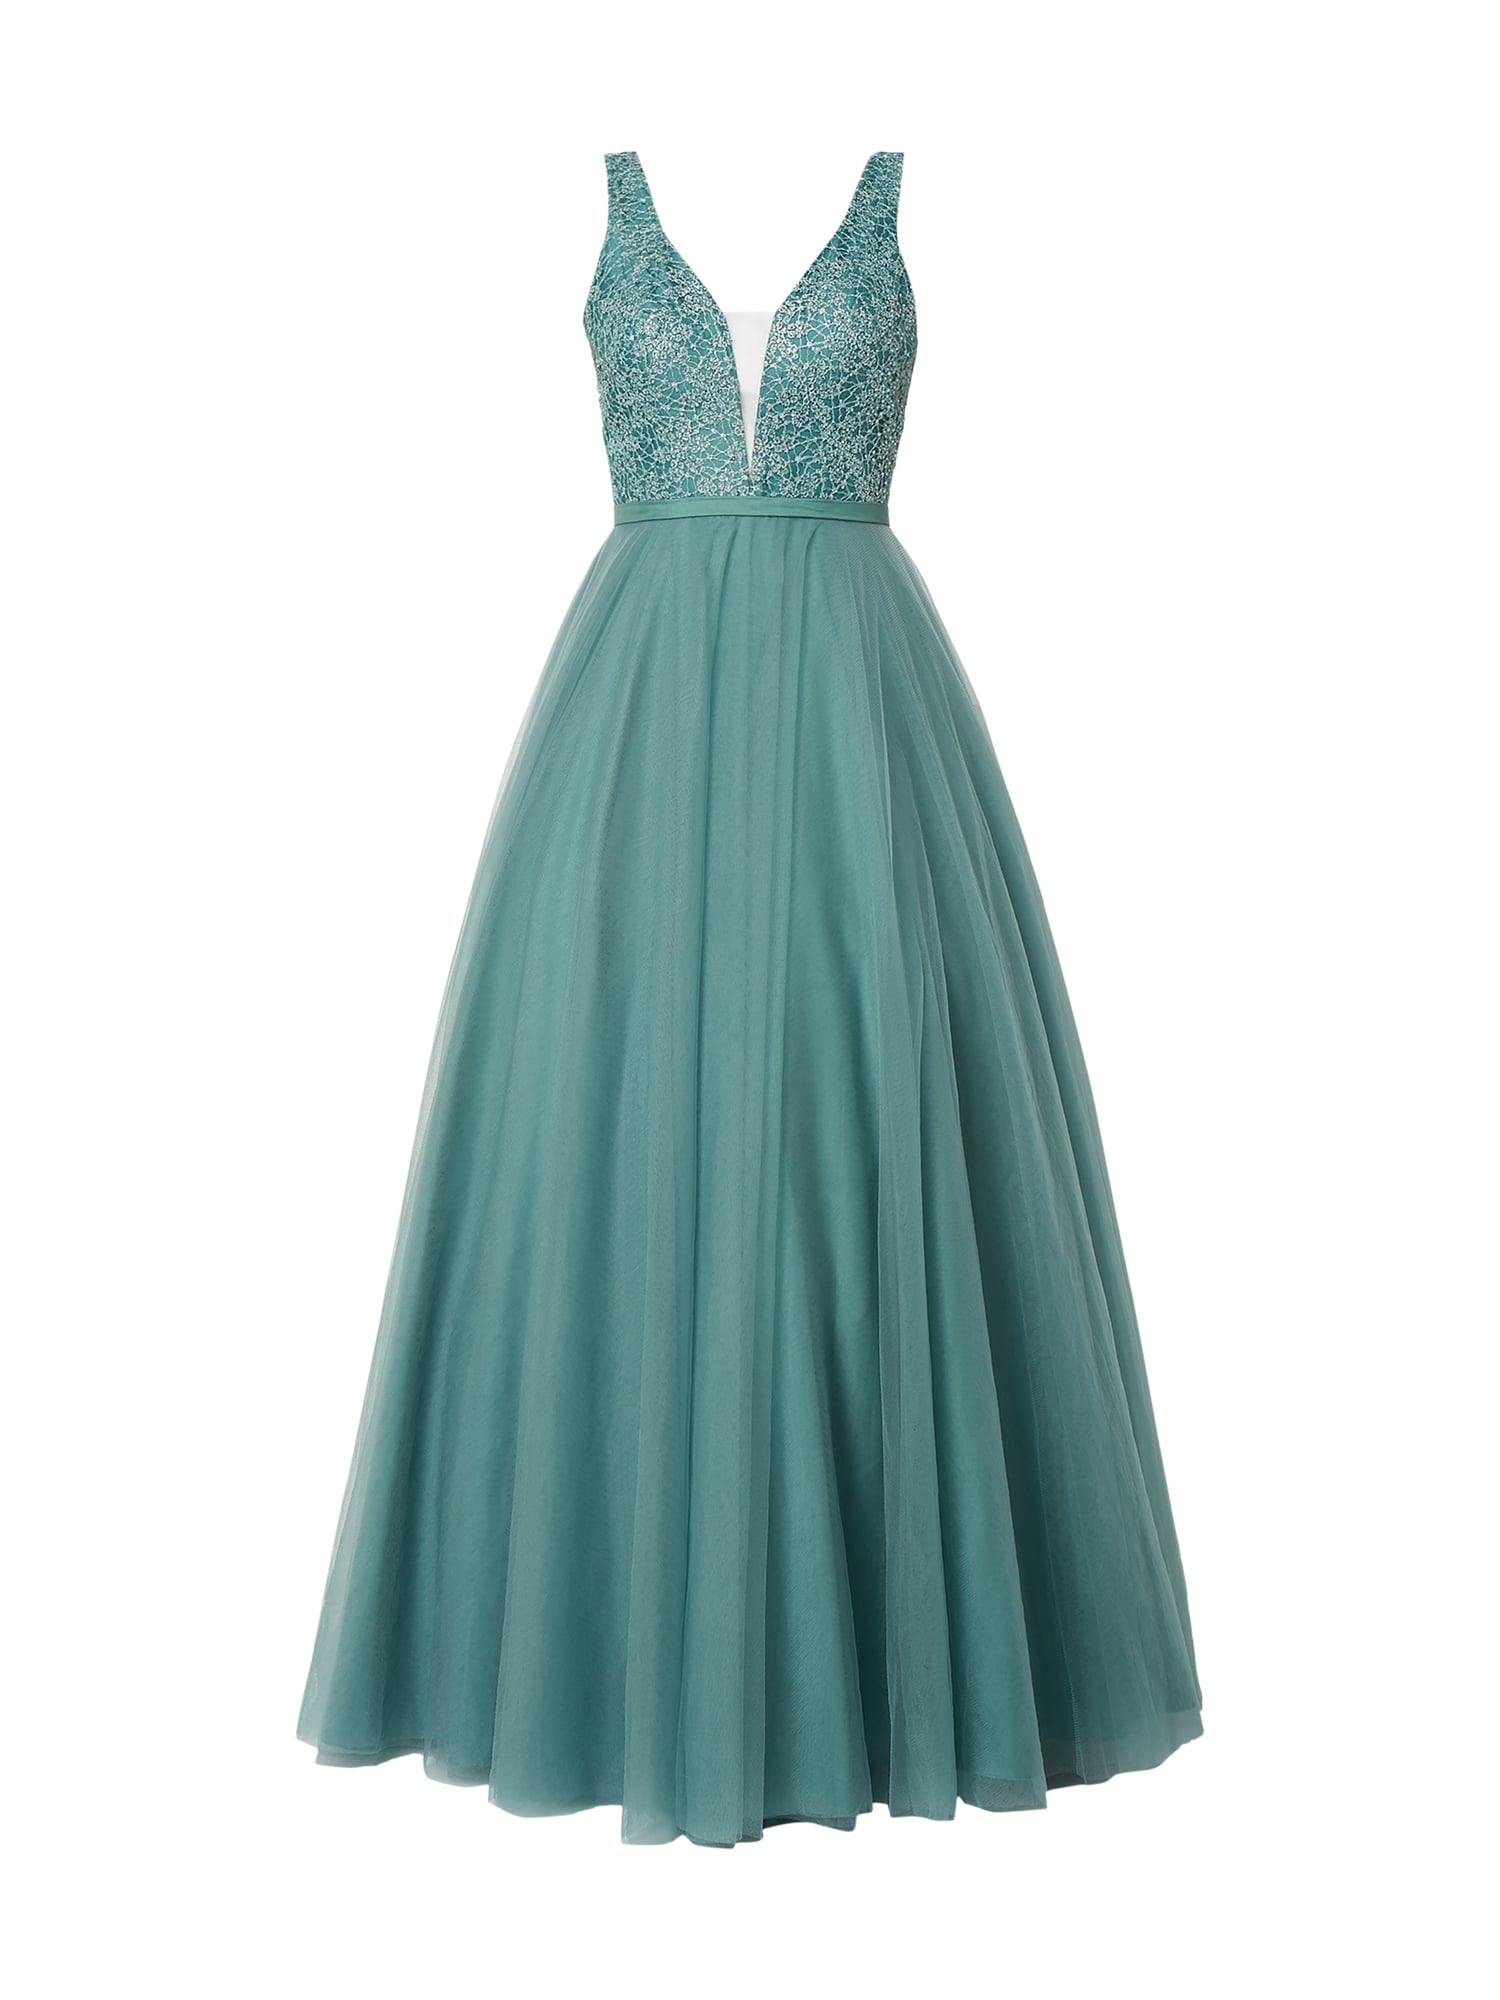 13 Coolste Luxuar Limited Abendkleid Ärmel10 Genial Luxuar Limited Abendkleid für 2019